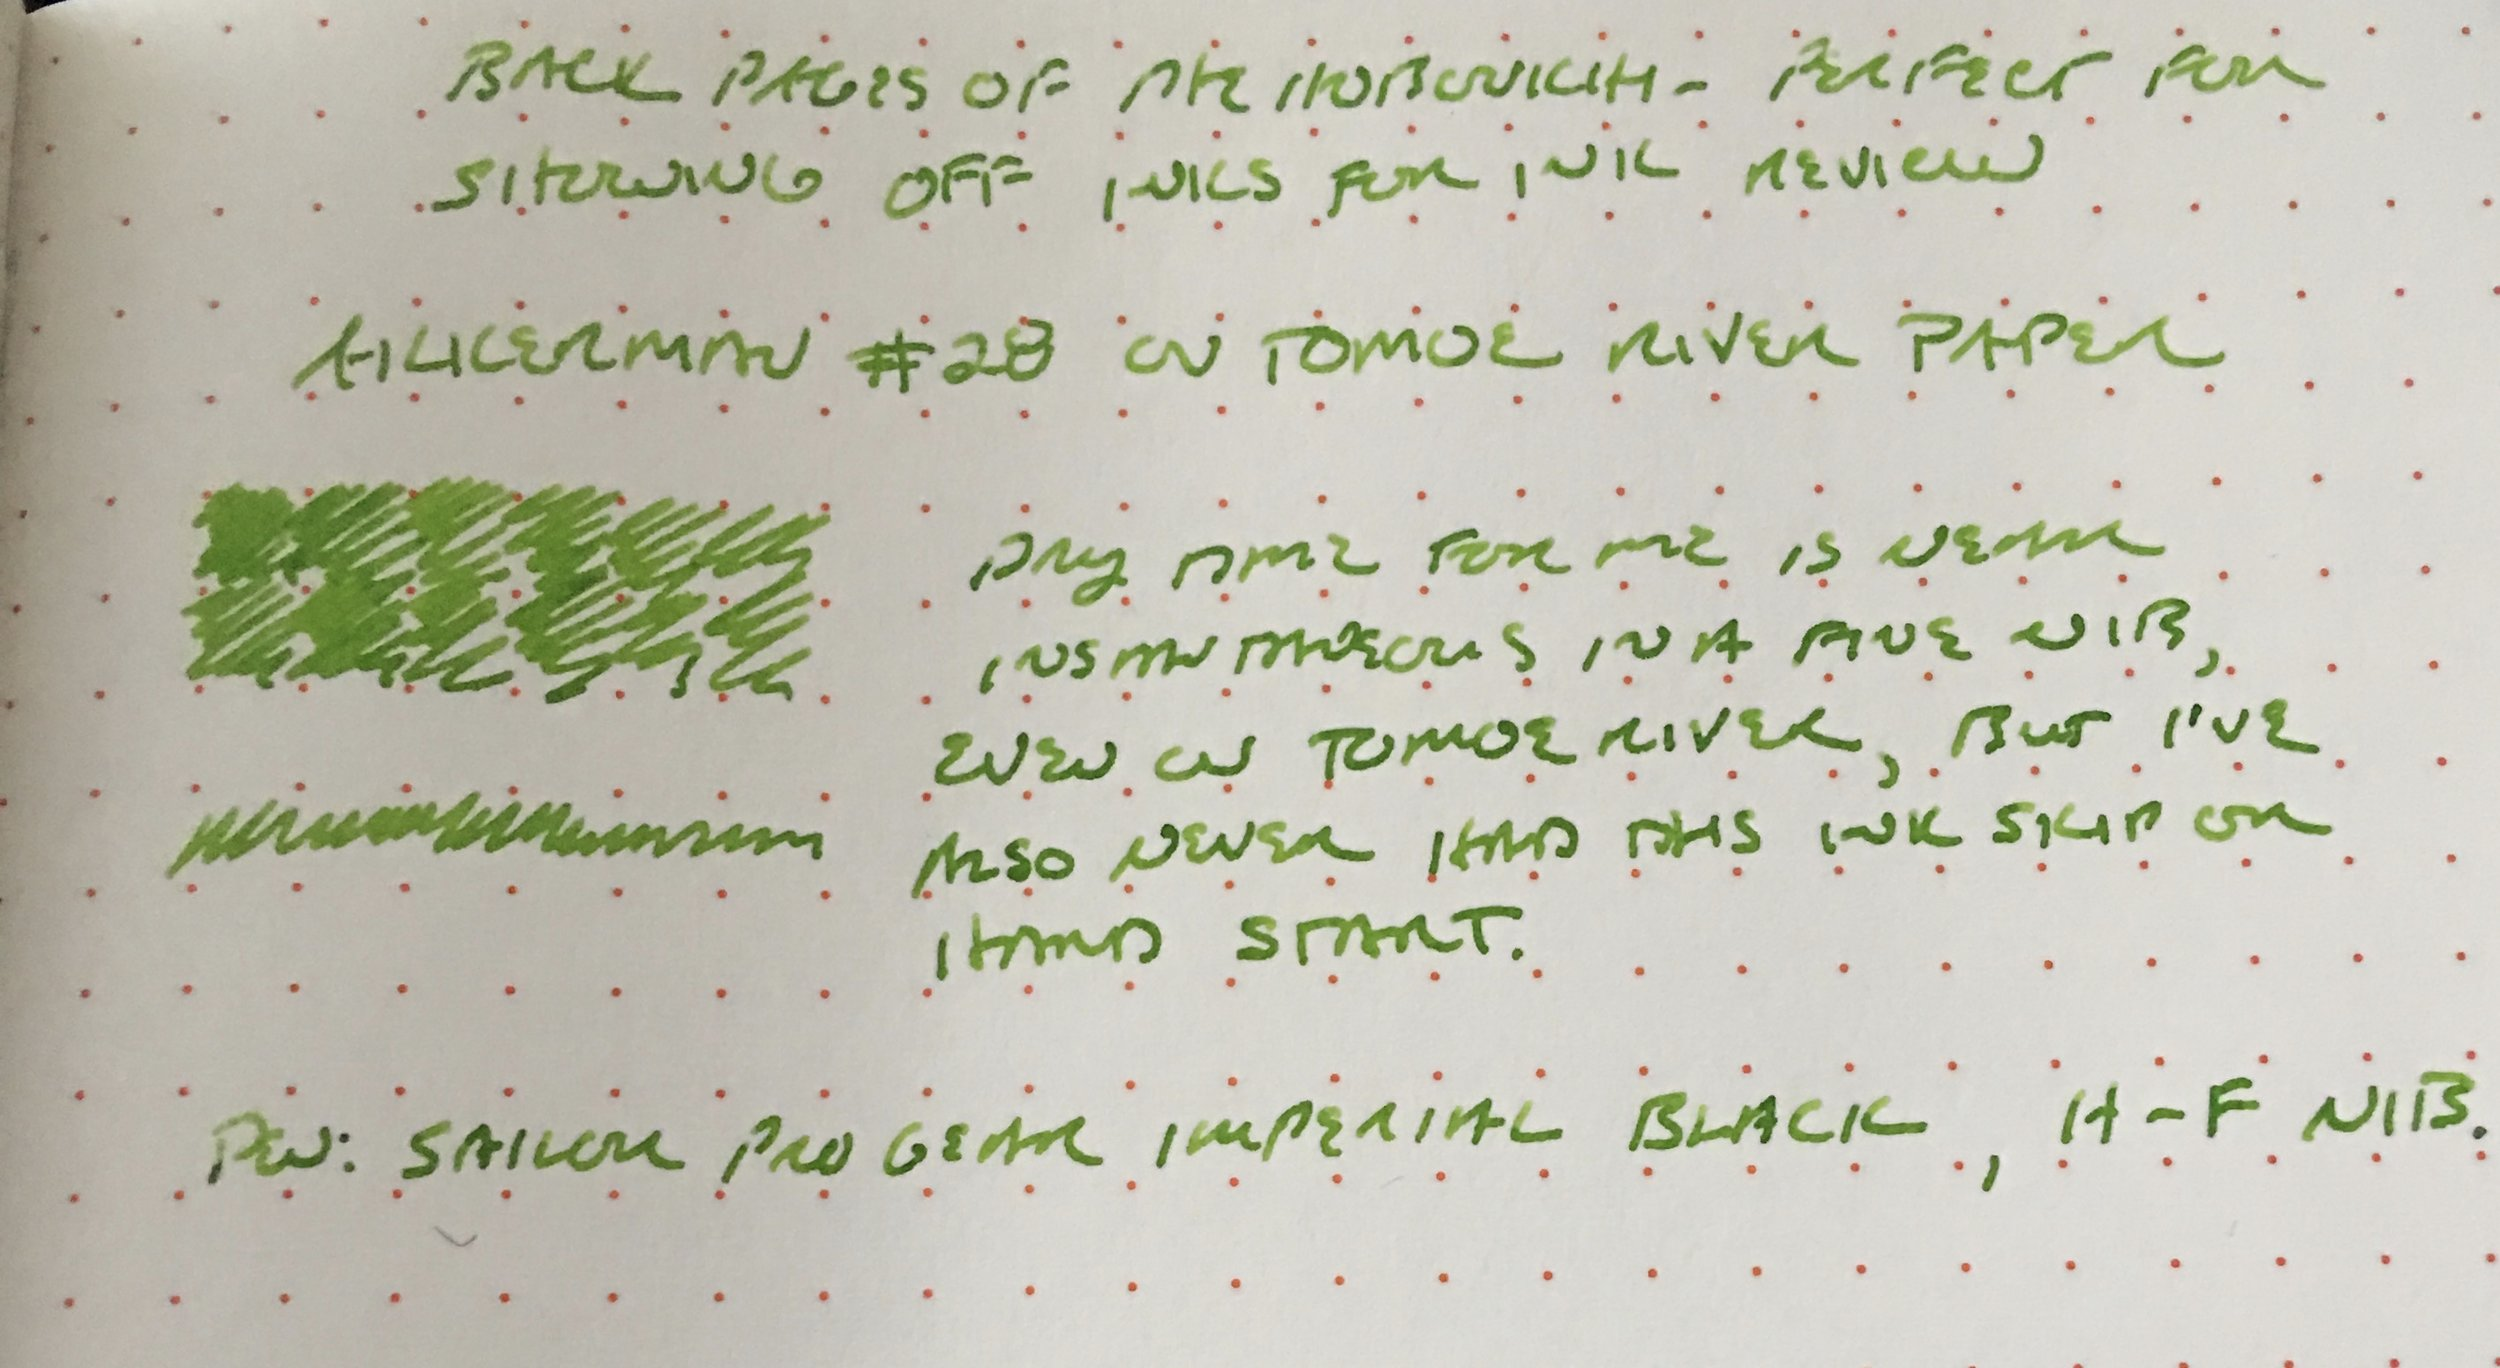 A broader shot of the Akkerman #28 writing sample on Tomoe River Paper.